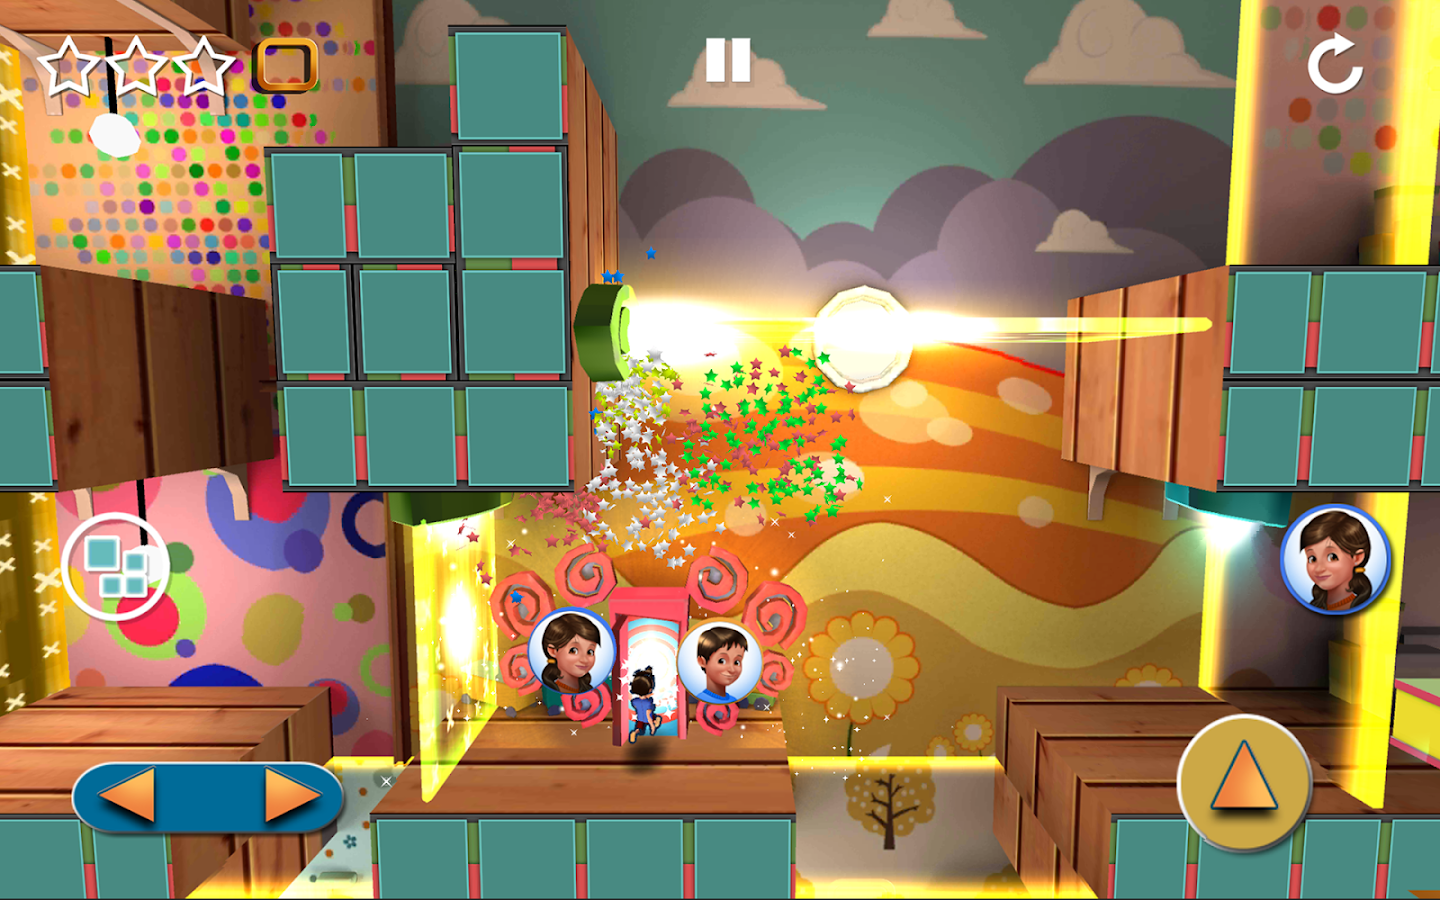 Lost Twins - A Surreal Puzzler Screenshot 13